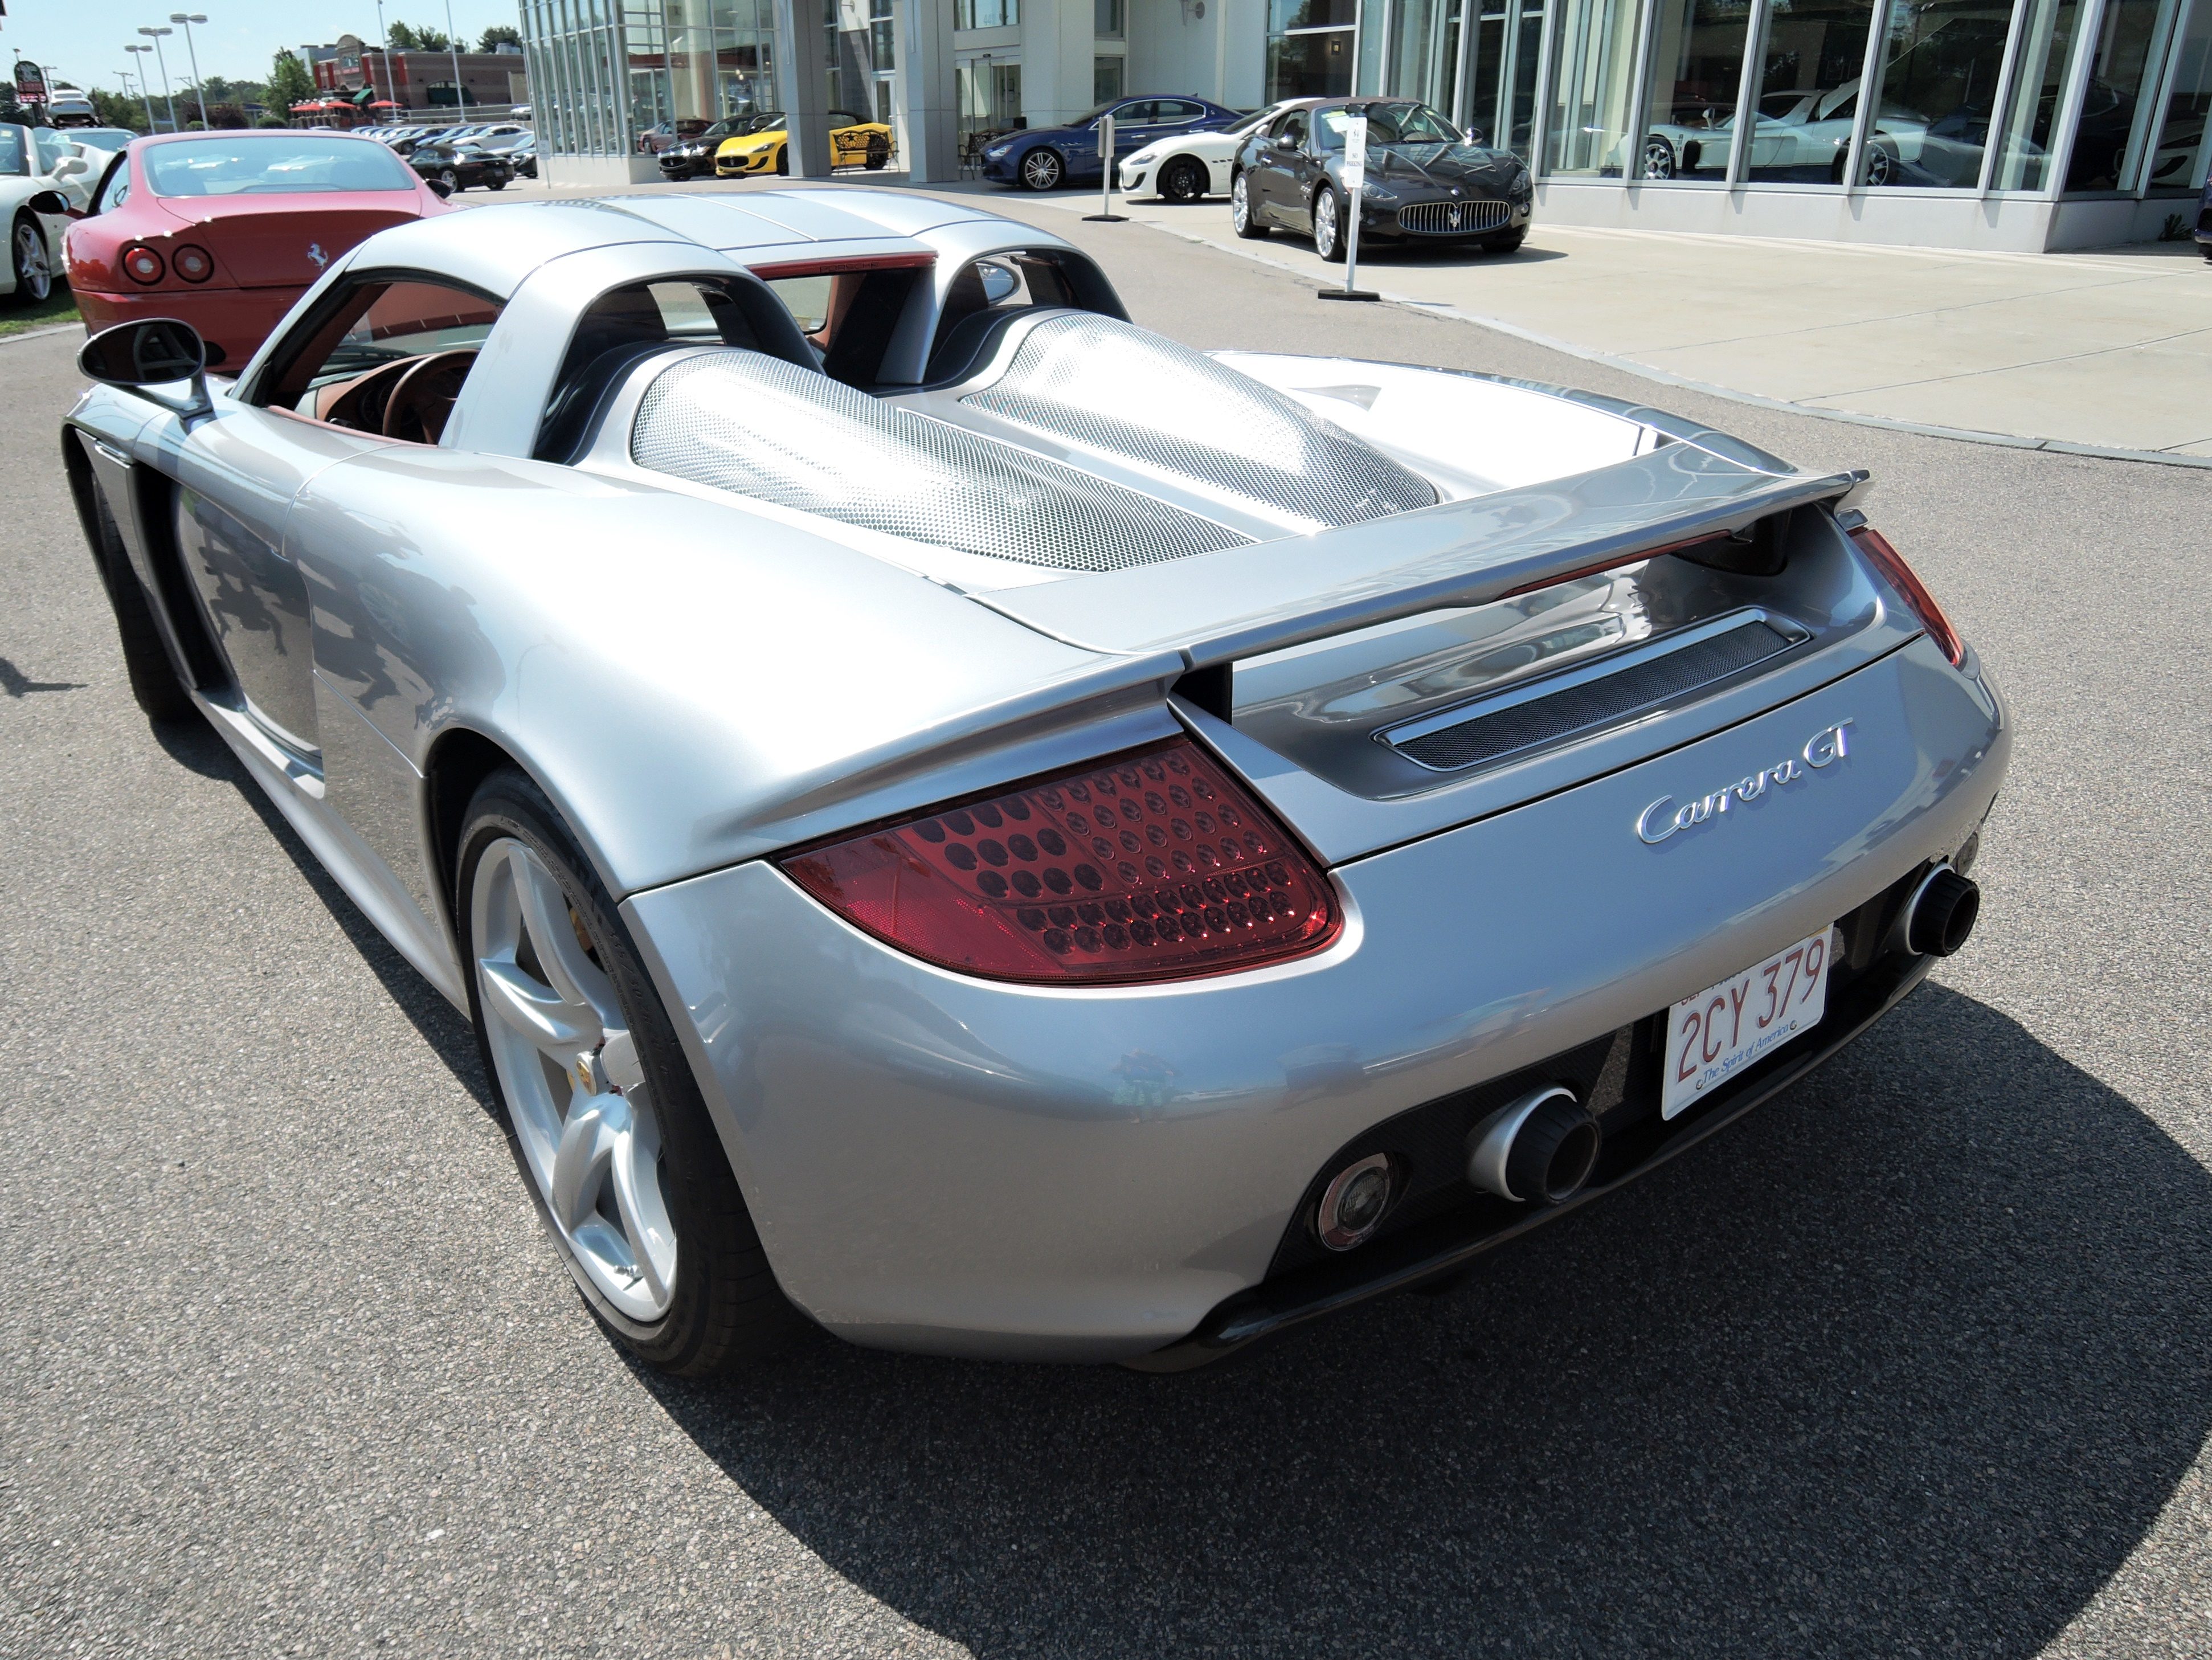 silver 2005 Porsche Carrera GT - monterey car week